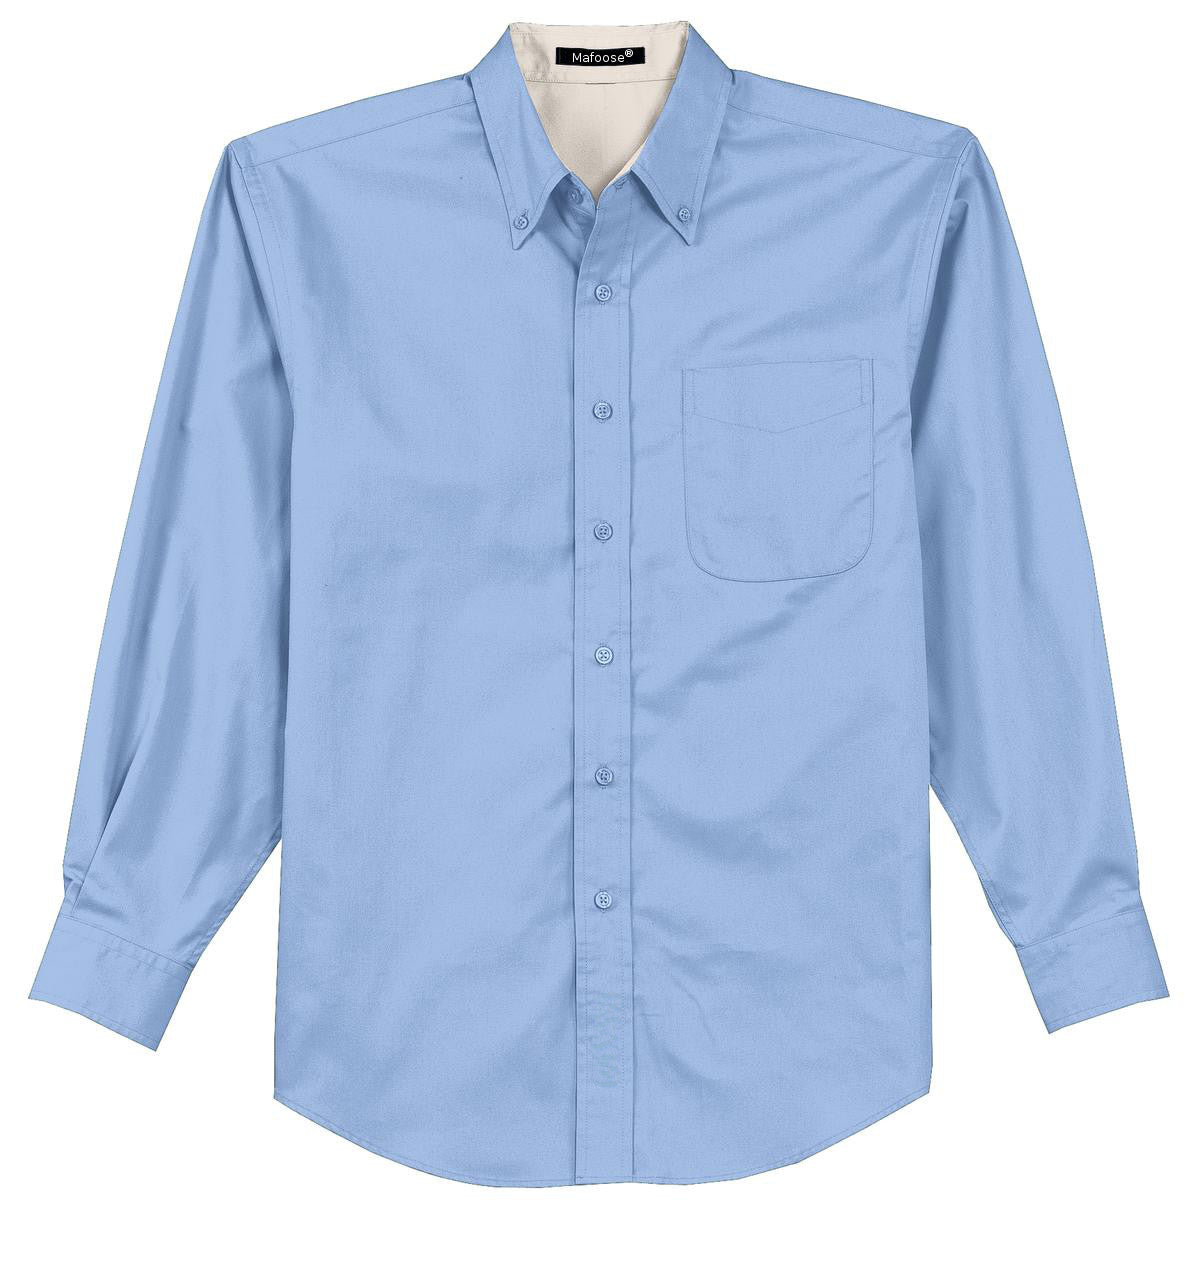 Mafoose Men's Tall Long Sleeve Easy Care Shirt Light Blue/ Light Stone-Front